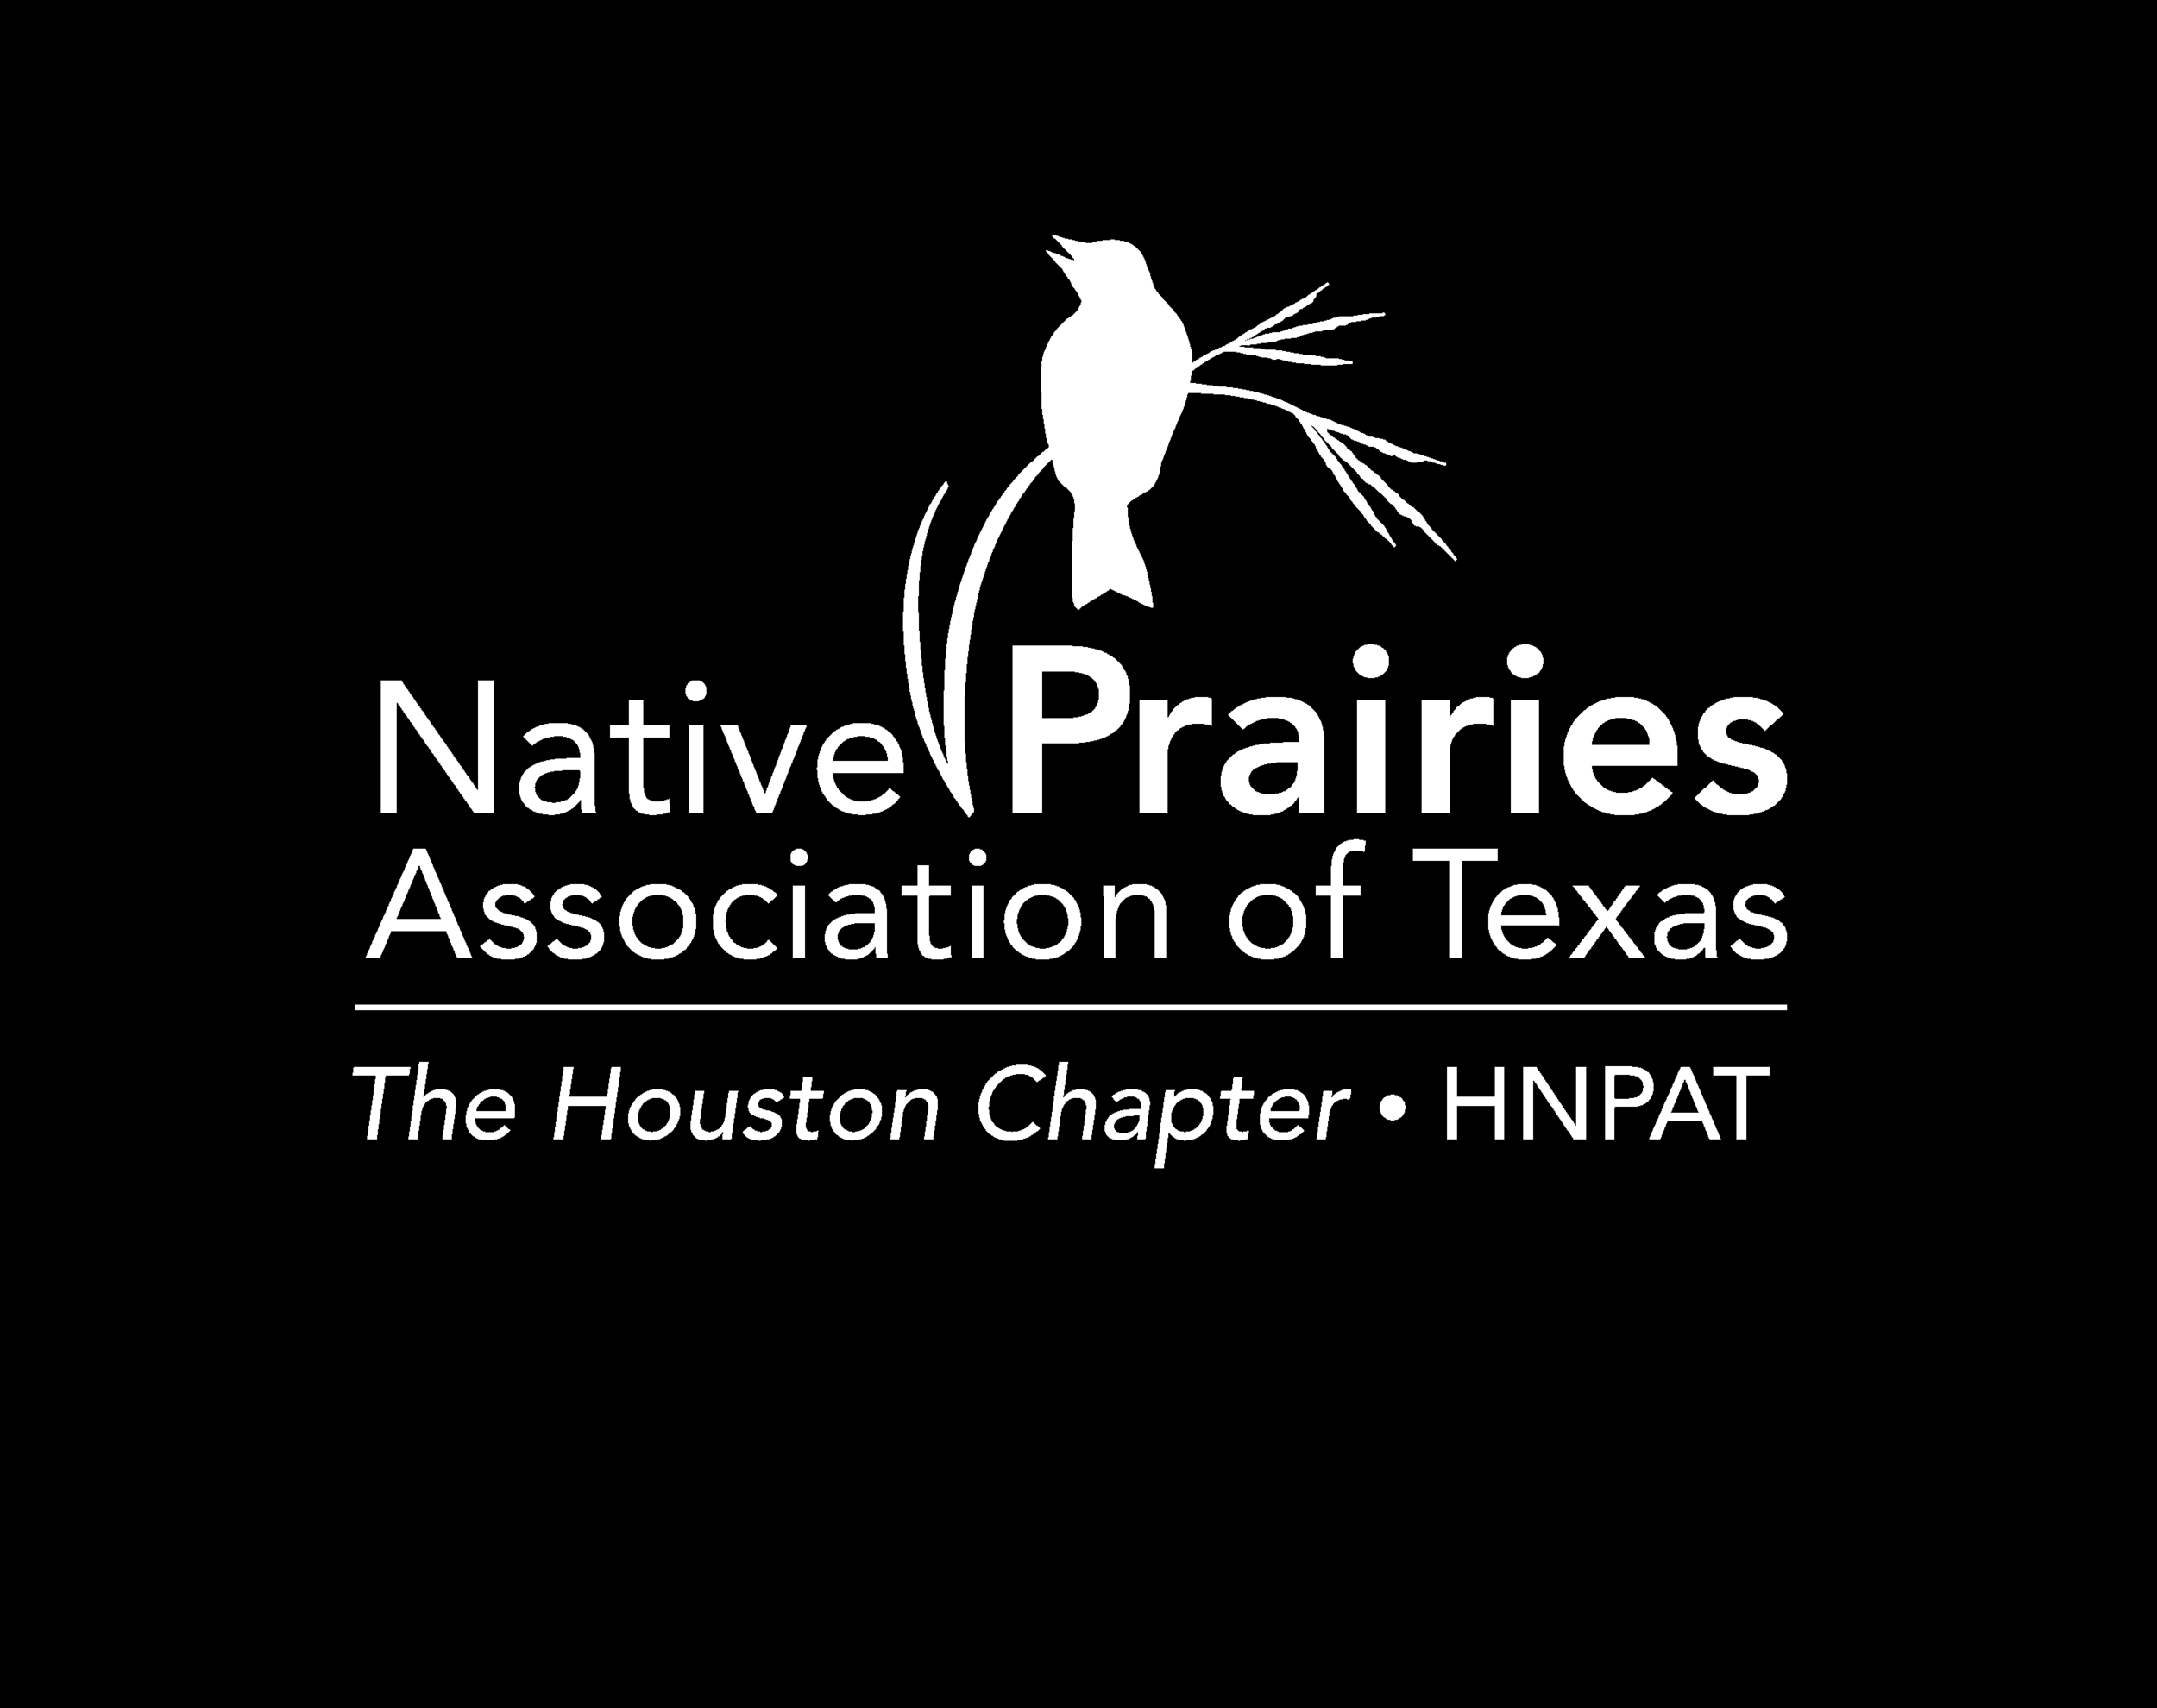 A group dedicated to restoring, teaching, learning, and enjoying Houston prairies, especially the Lawther-Deer Park Prairie.